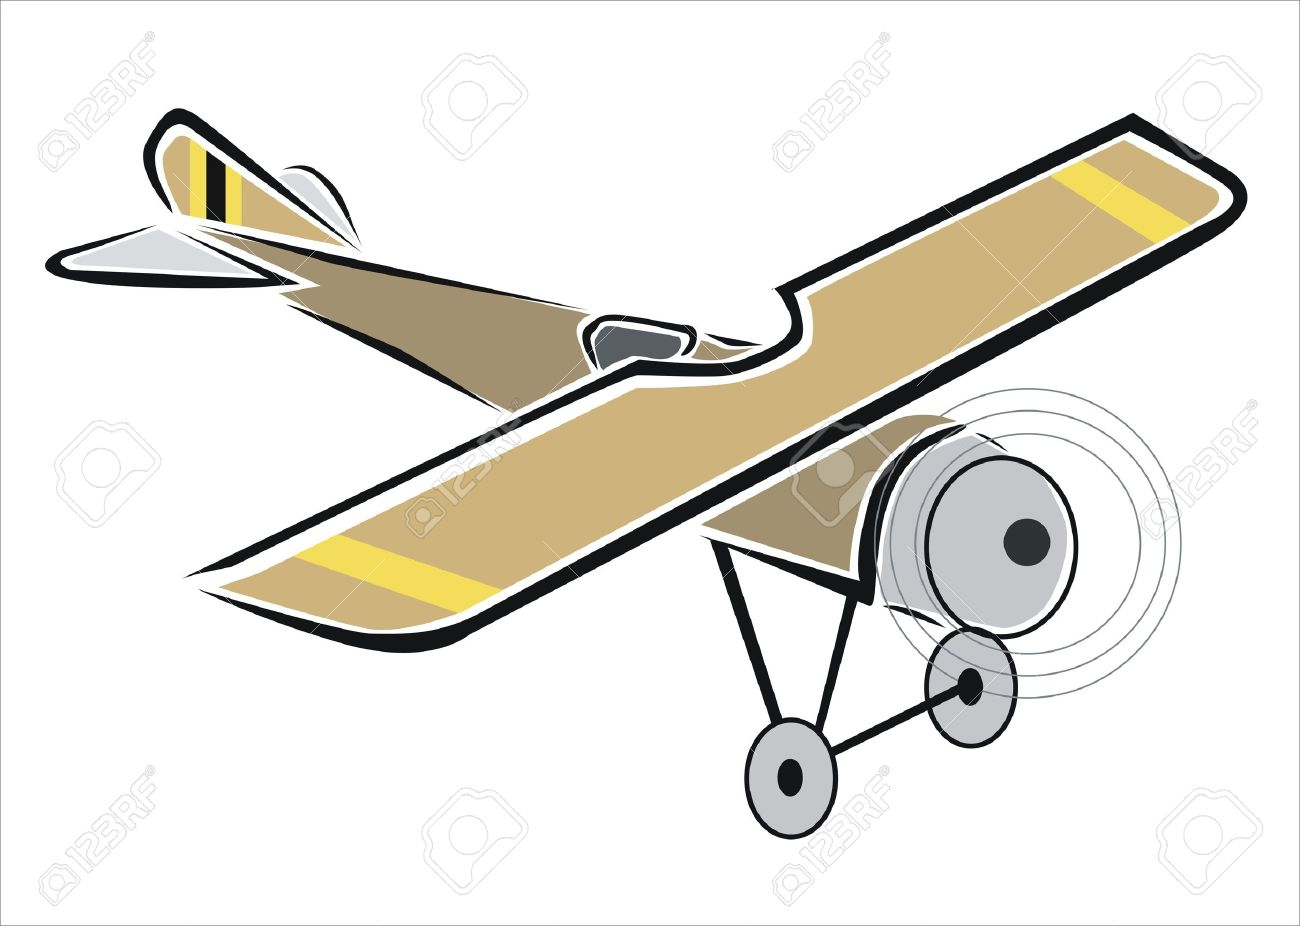 1300x926 Drawing Of An Old Plane Royalty Free Cliparts, Vectors, And Stock